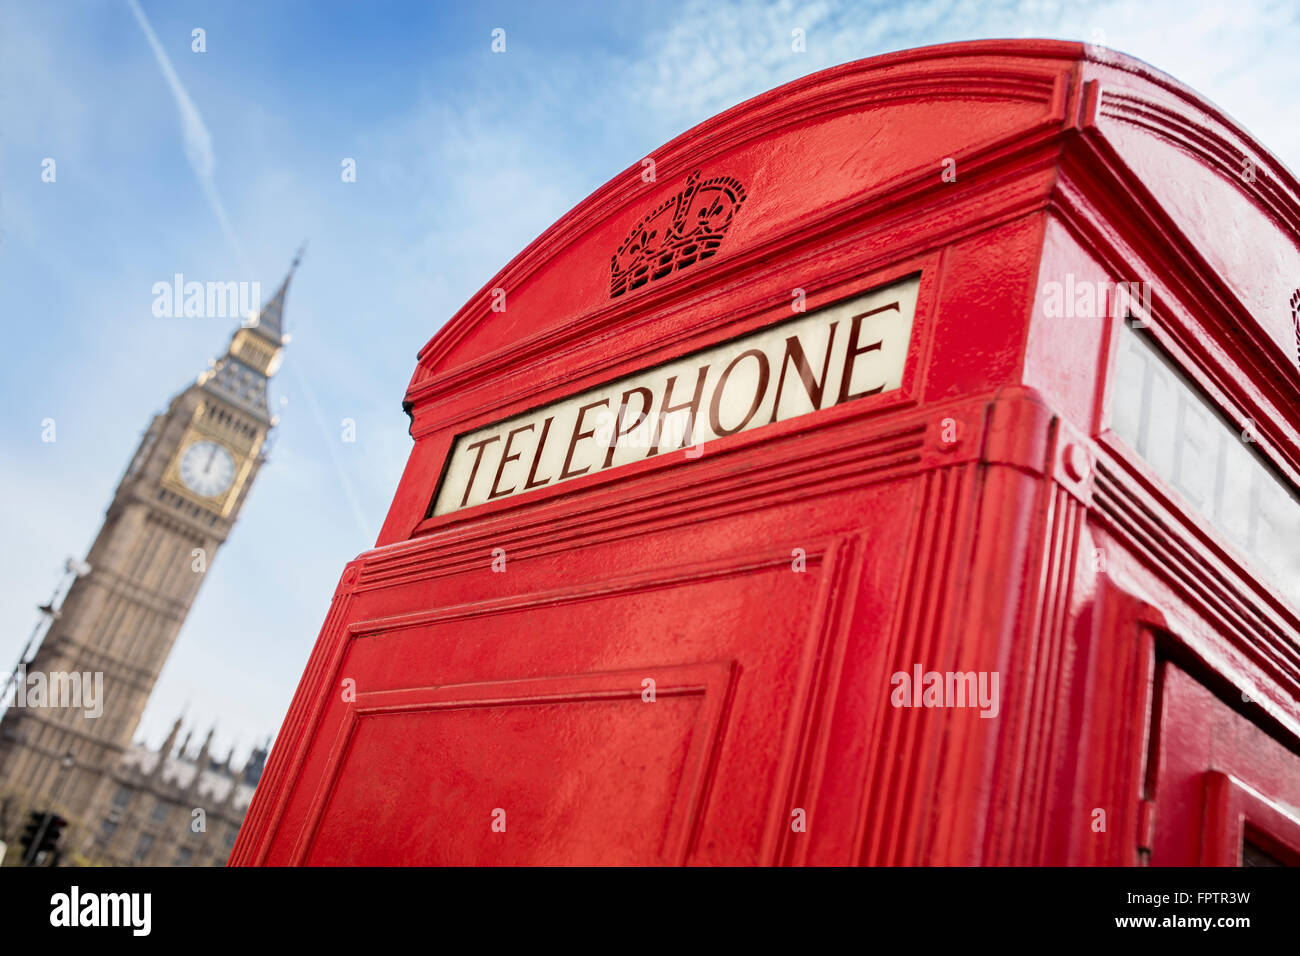 London telephone booth in front of  big ben - Stock Image